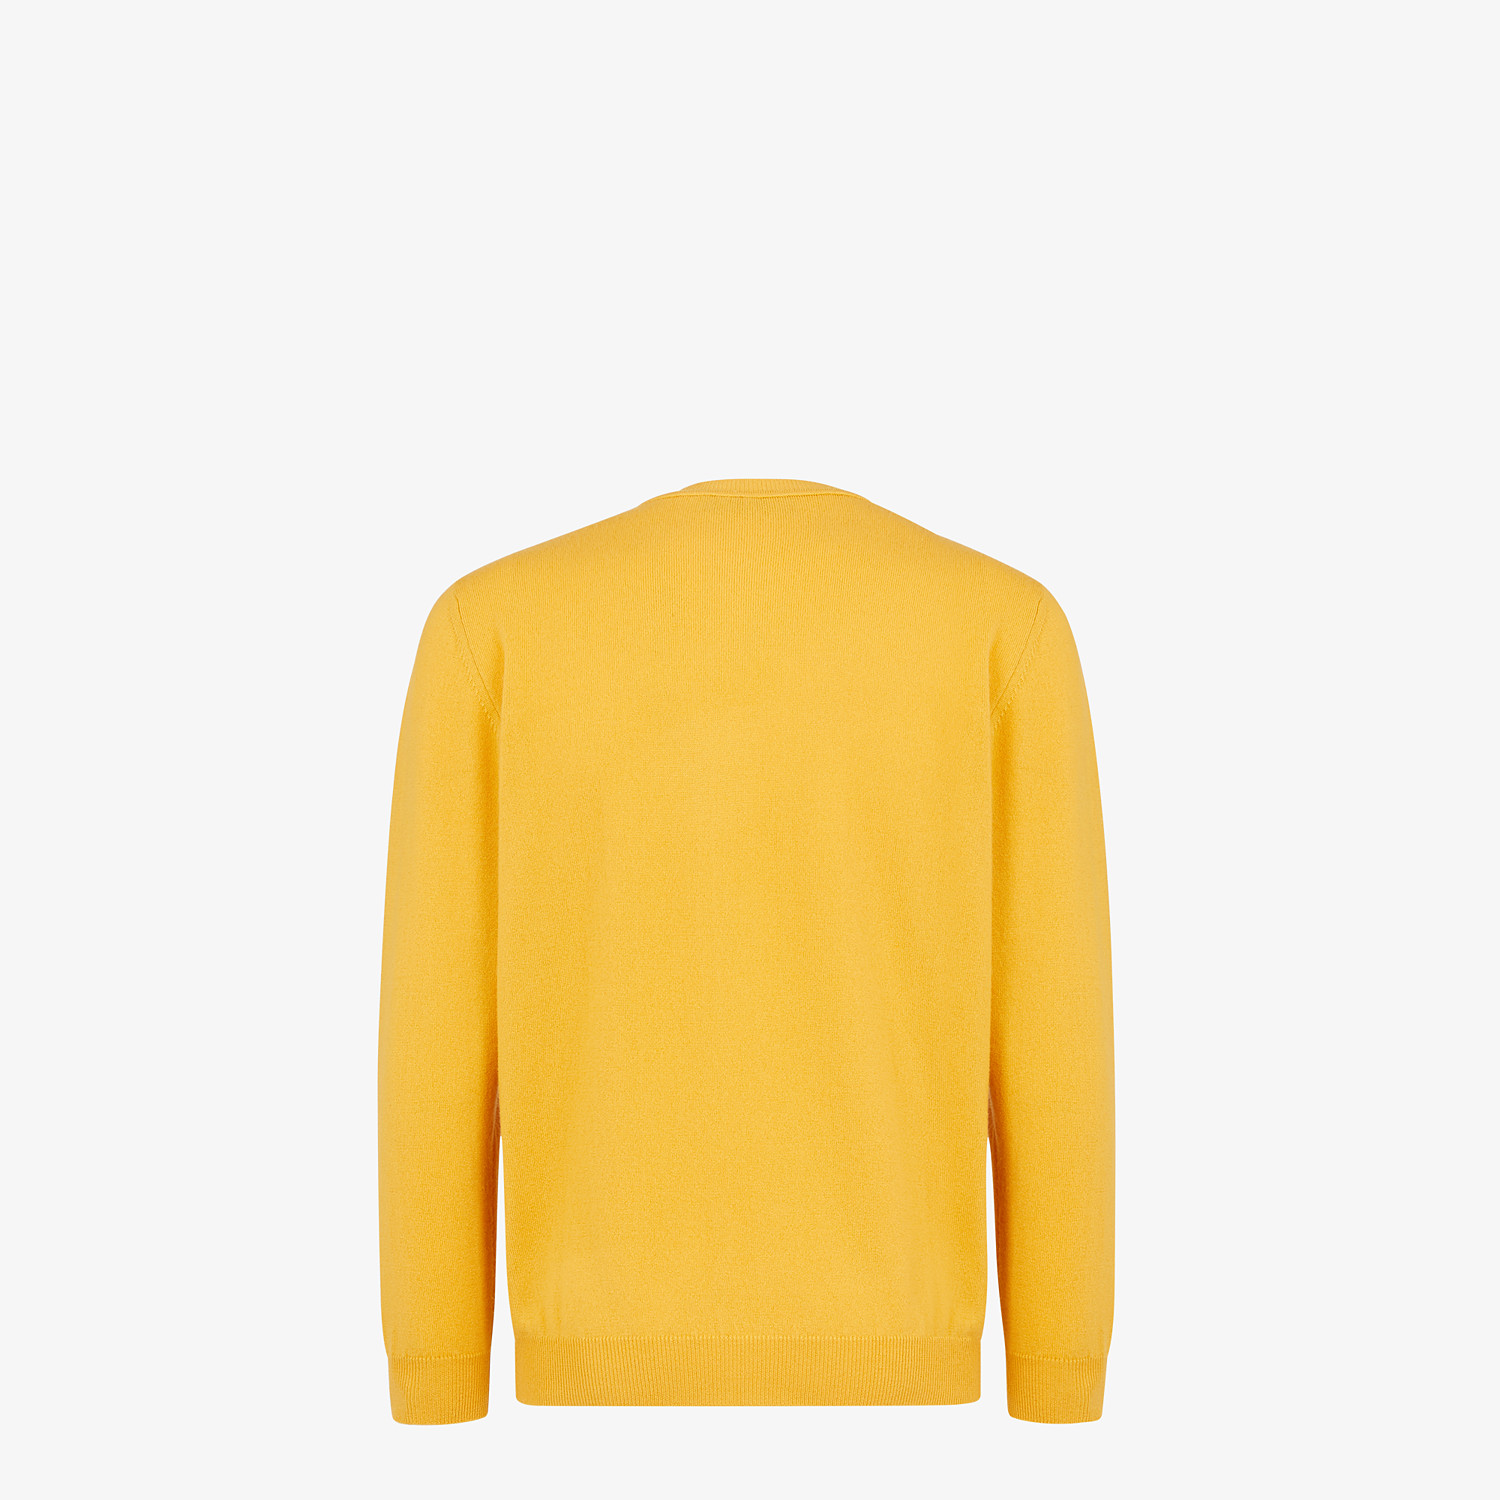 FENDI SWEATER - Yellow cashmere sweater - view 2 detail